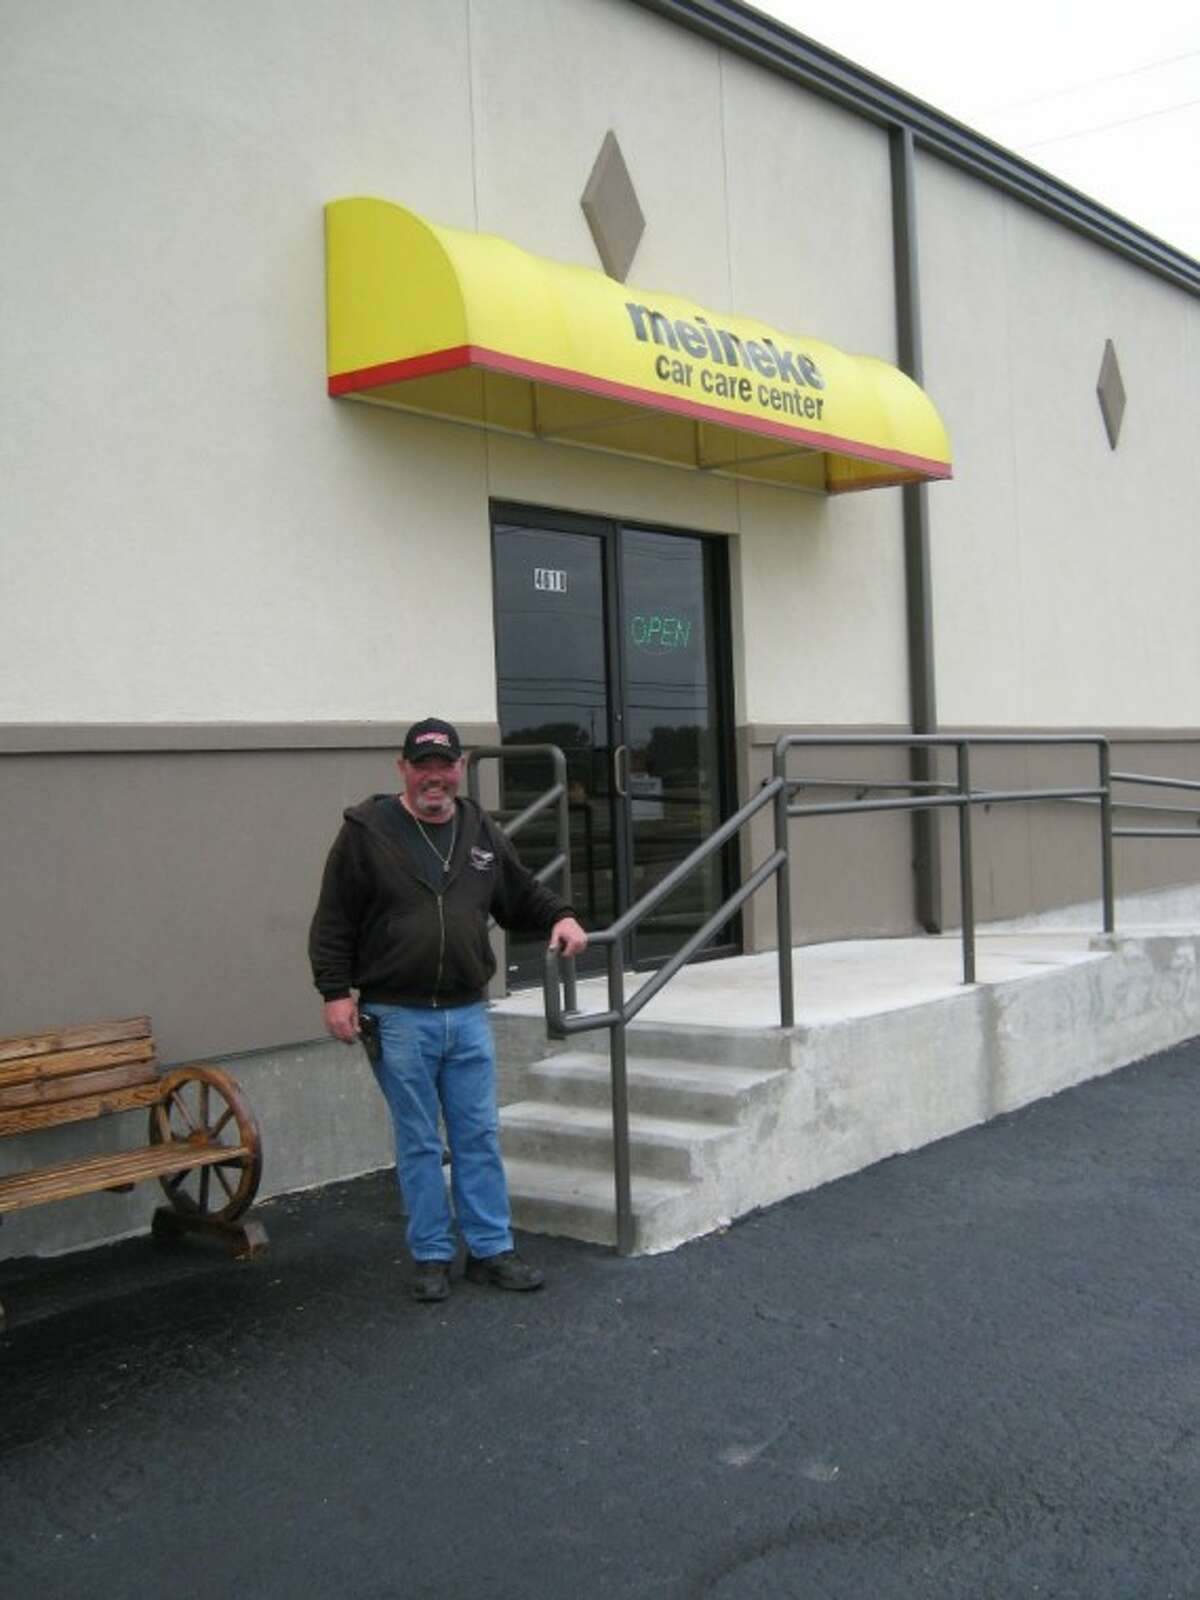 Roy Ritter, owner of Meineke Car Care Center, recently moved his business from Pasadena to Deer Park and is seeing a good response from community members. He hopes this will continue into the new year.